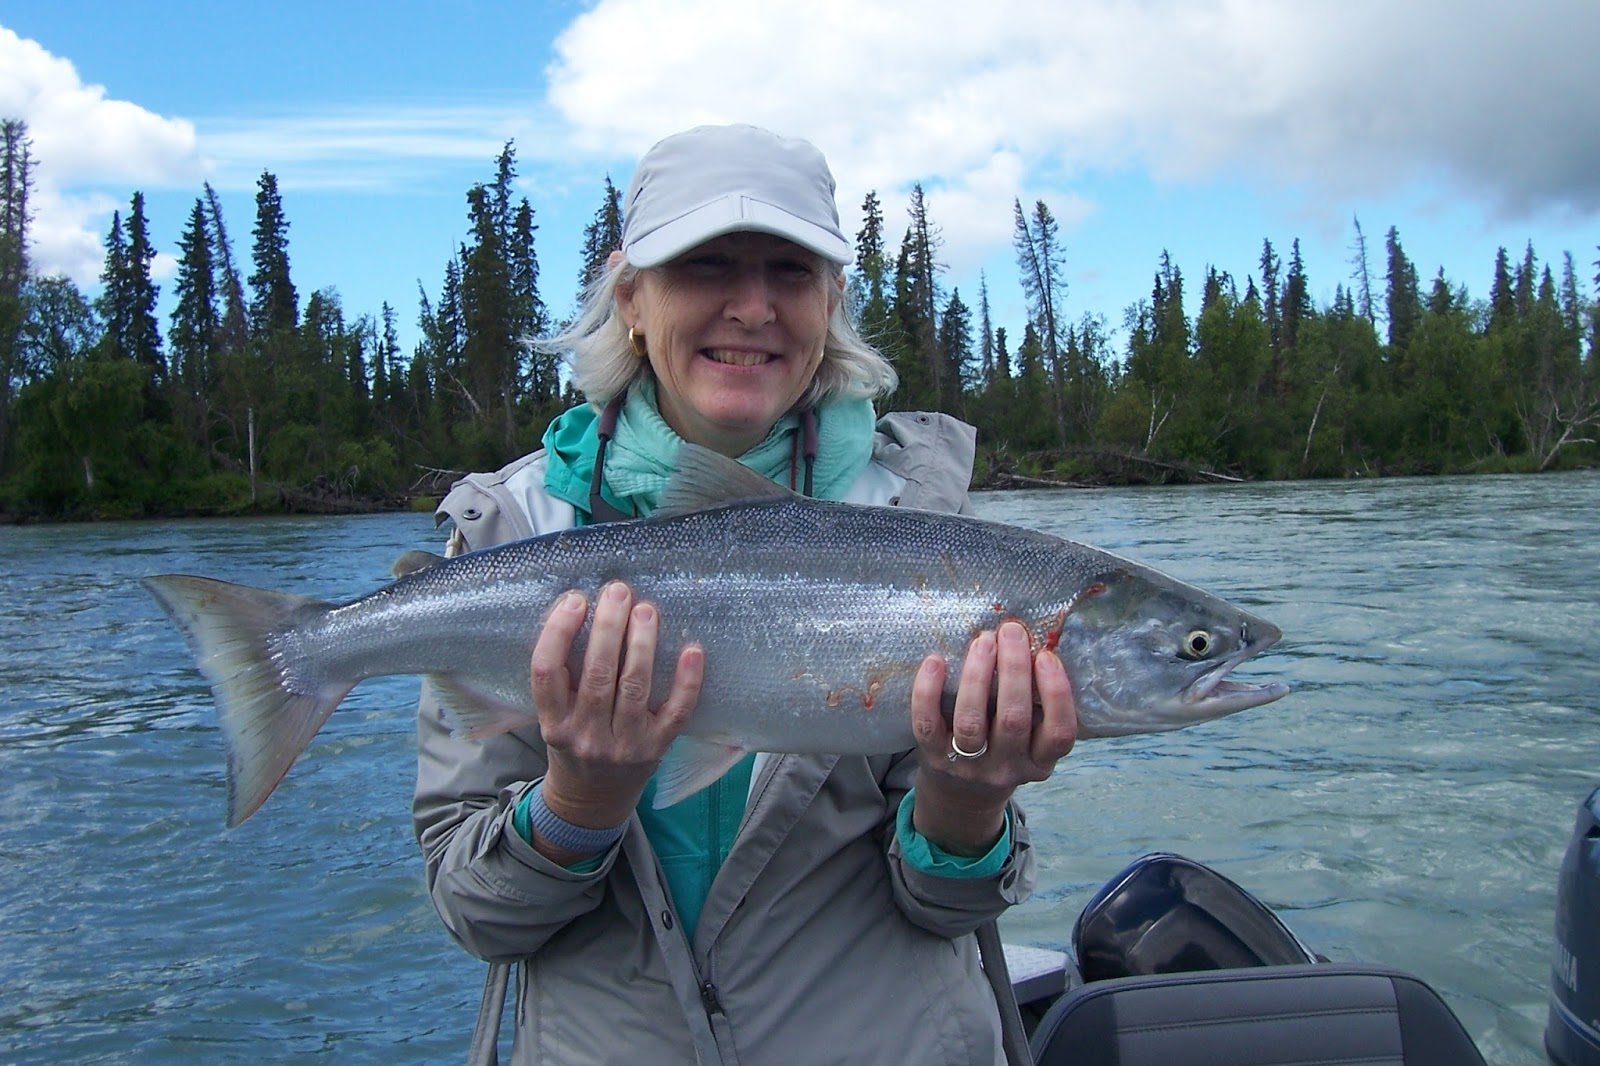 Beaver creek cabins guide service fishing report week for Fishing guide jobs